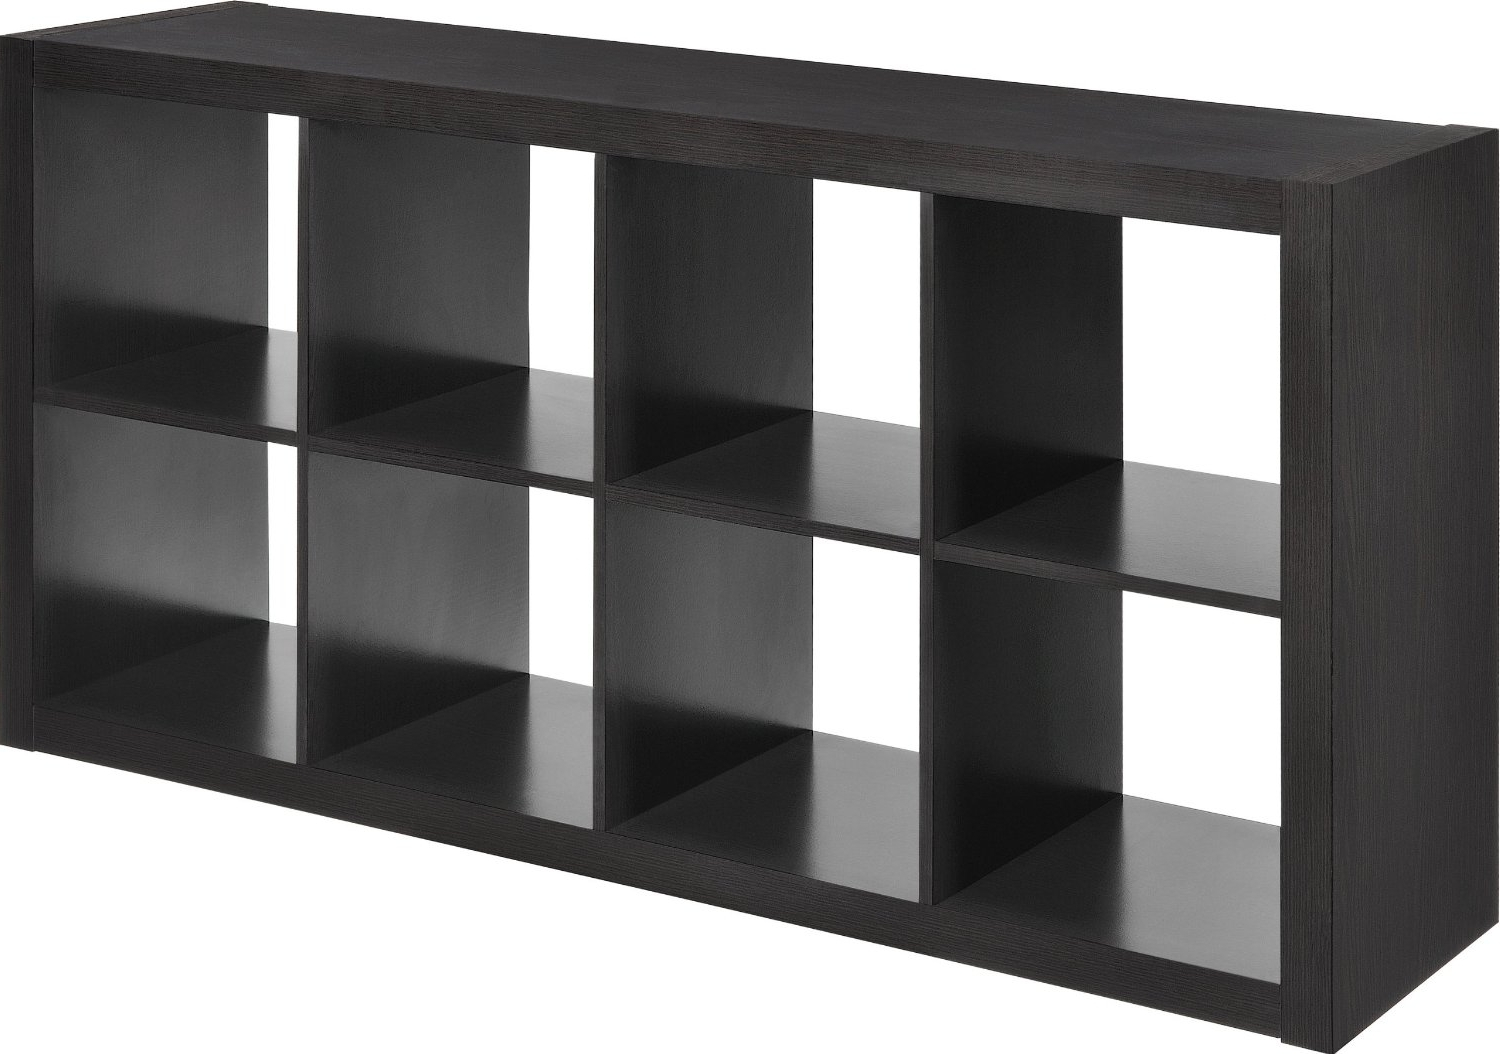 Storage : Ikea Cube Storage Ideas Ikea Furniture Toy Storage Ikea Regarding Popular Expedit Bookcases (View 11 of 15)